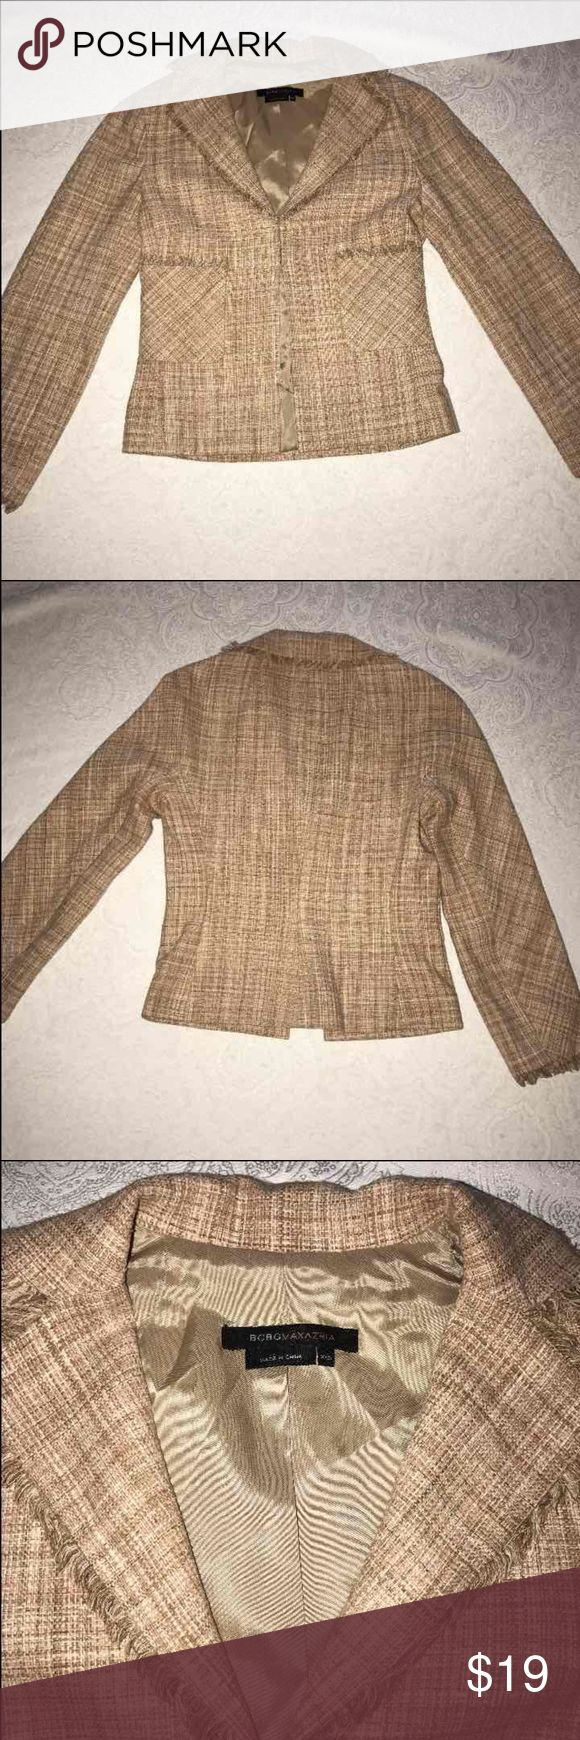 BCBG Max Azria Pink/Tan Silk Blazer The fabric is light pink and tan tweed 100% silk. In good condition. In size XXS. BCBGMaxAzria Jackets & Coats Blazers